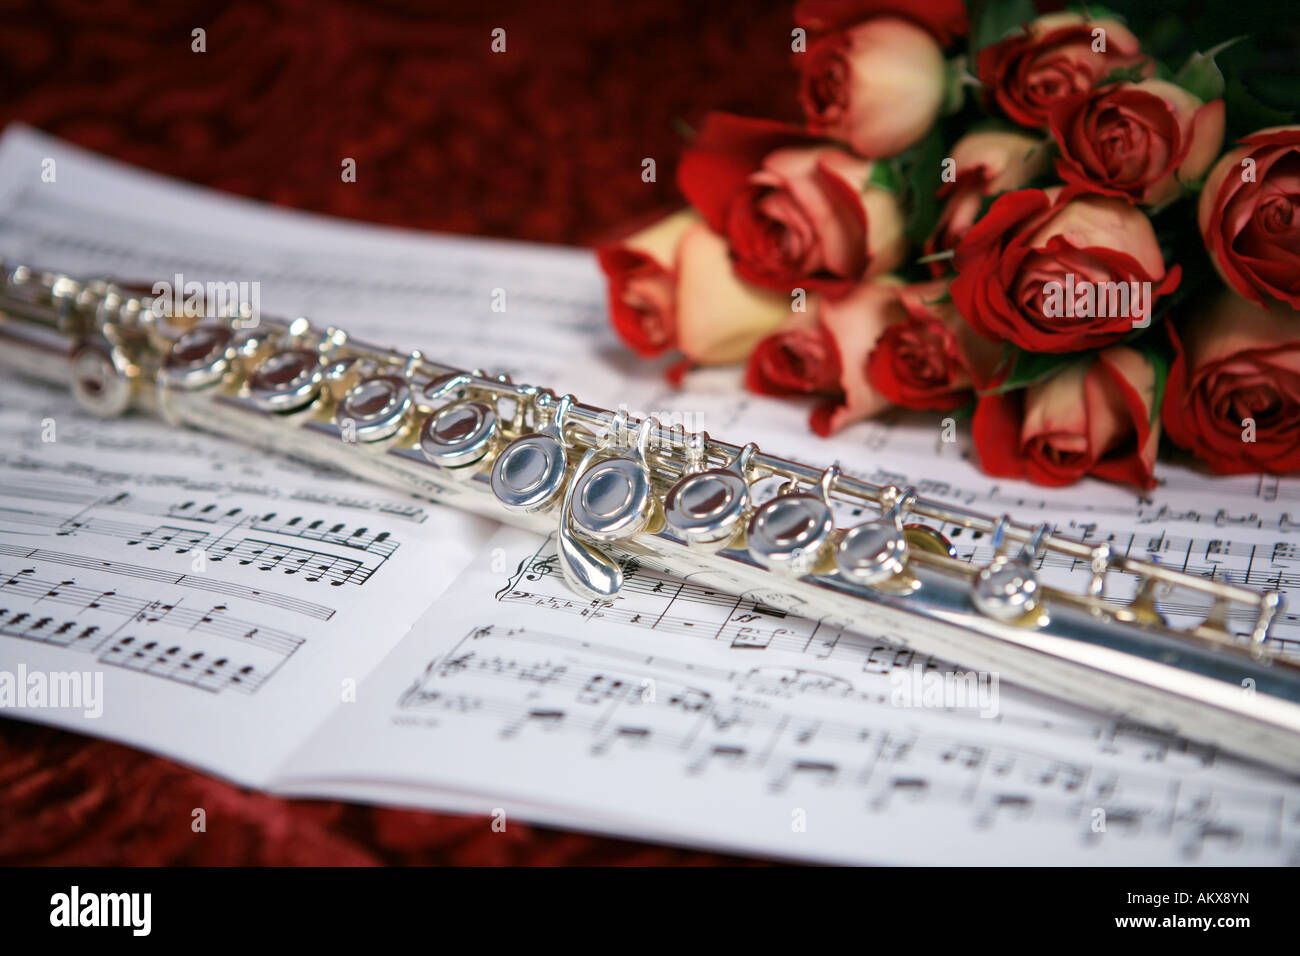 Simple Wallpaper Music Rose - silver-flute-on-sheet-music-with-bouquet-of-roses-on-red-velvet-background-AKX8YN  Image_61905.jpg